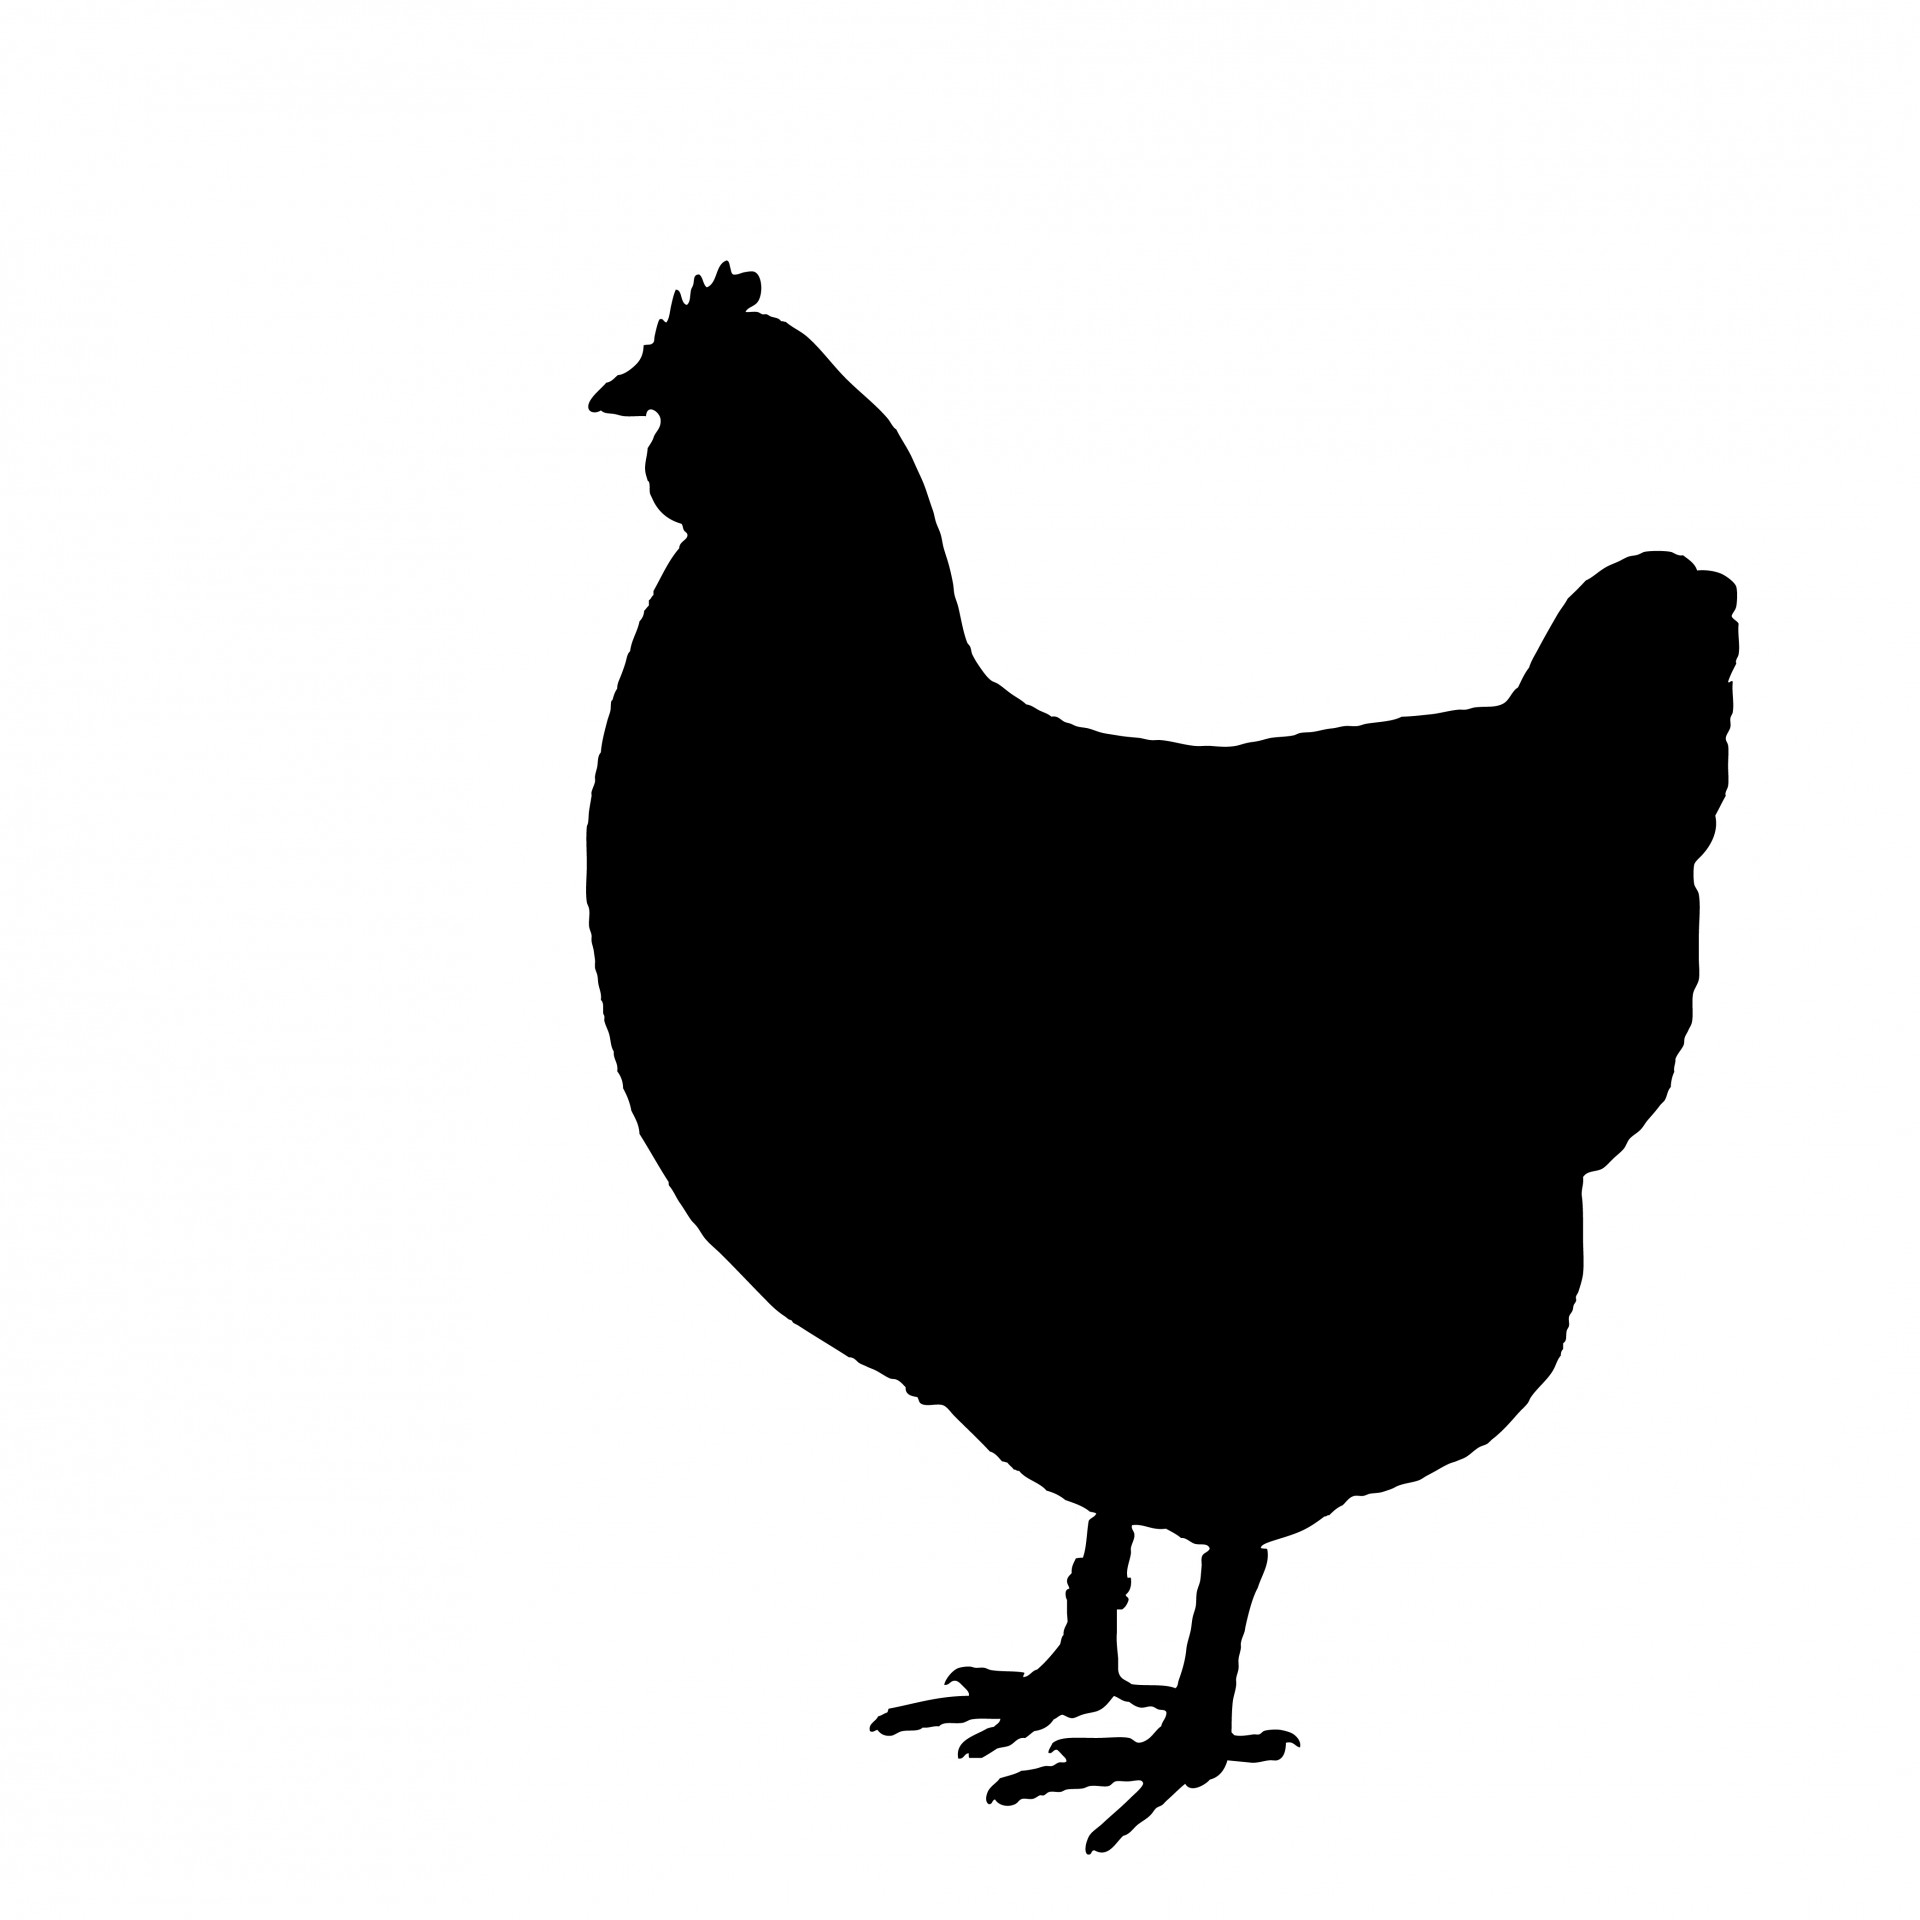 Silhouette free stock photo. Animals clipart chicken